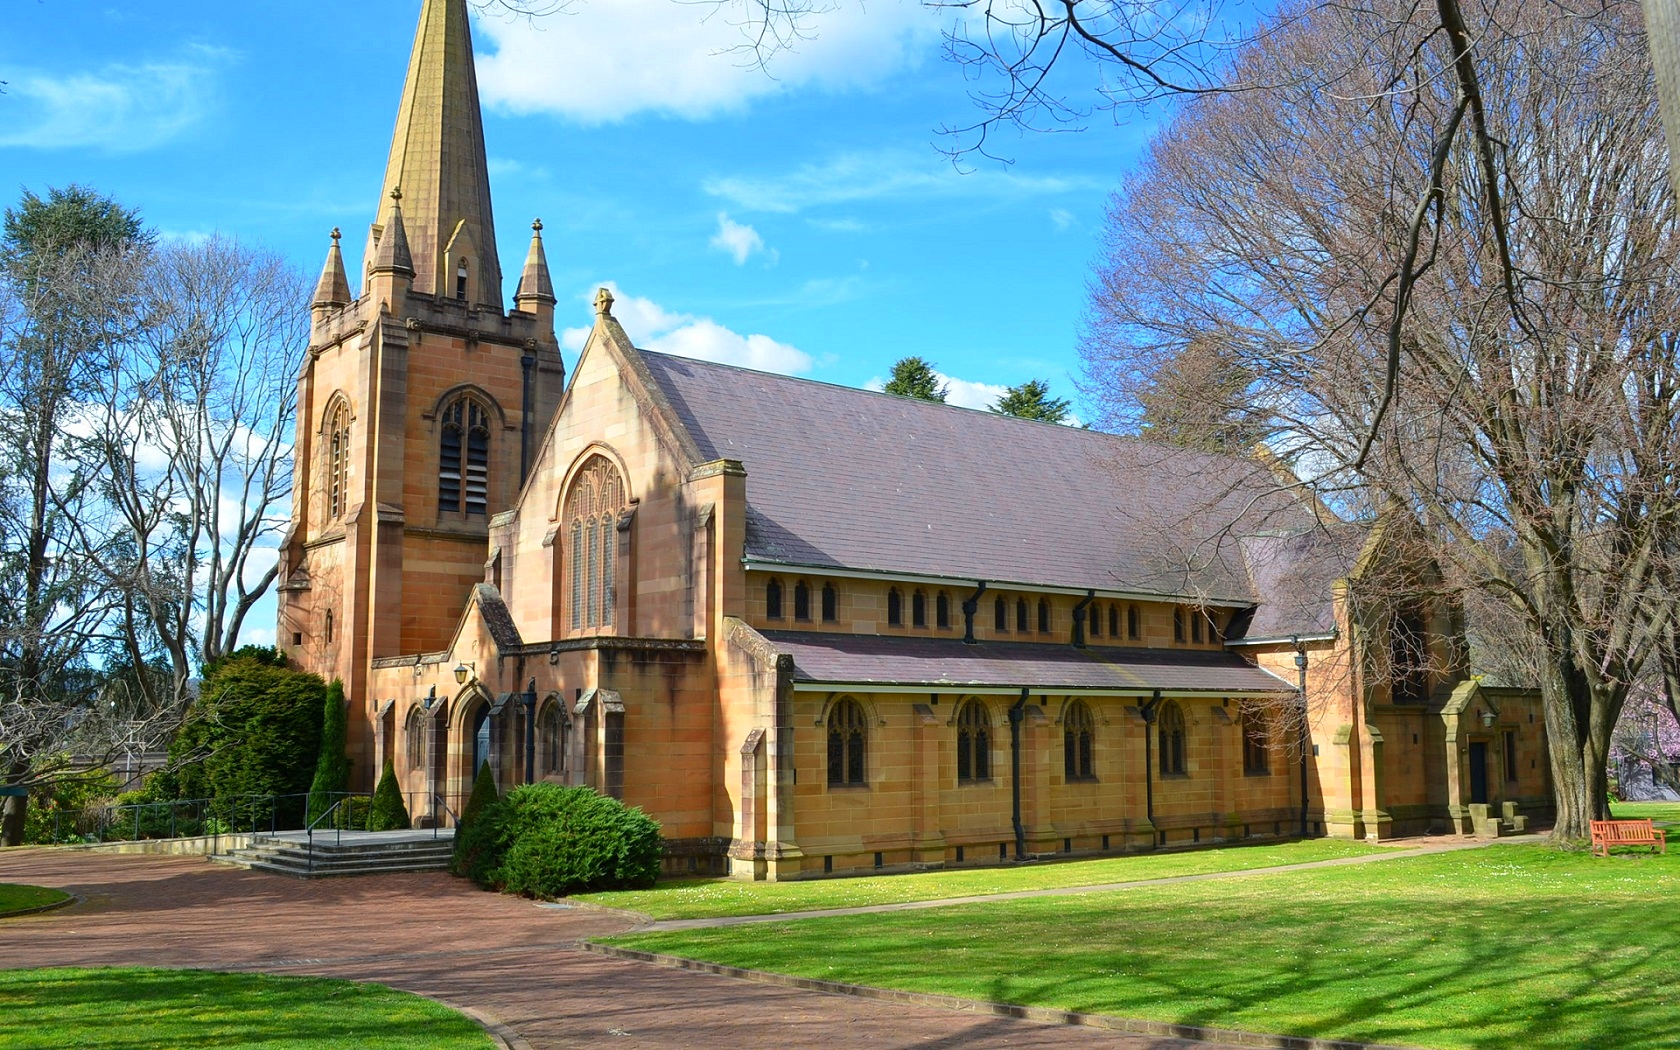 A Church In Lithgow NSW Wallpaper And Background Image